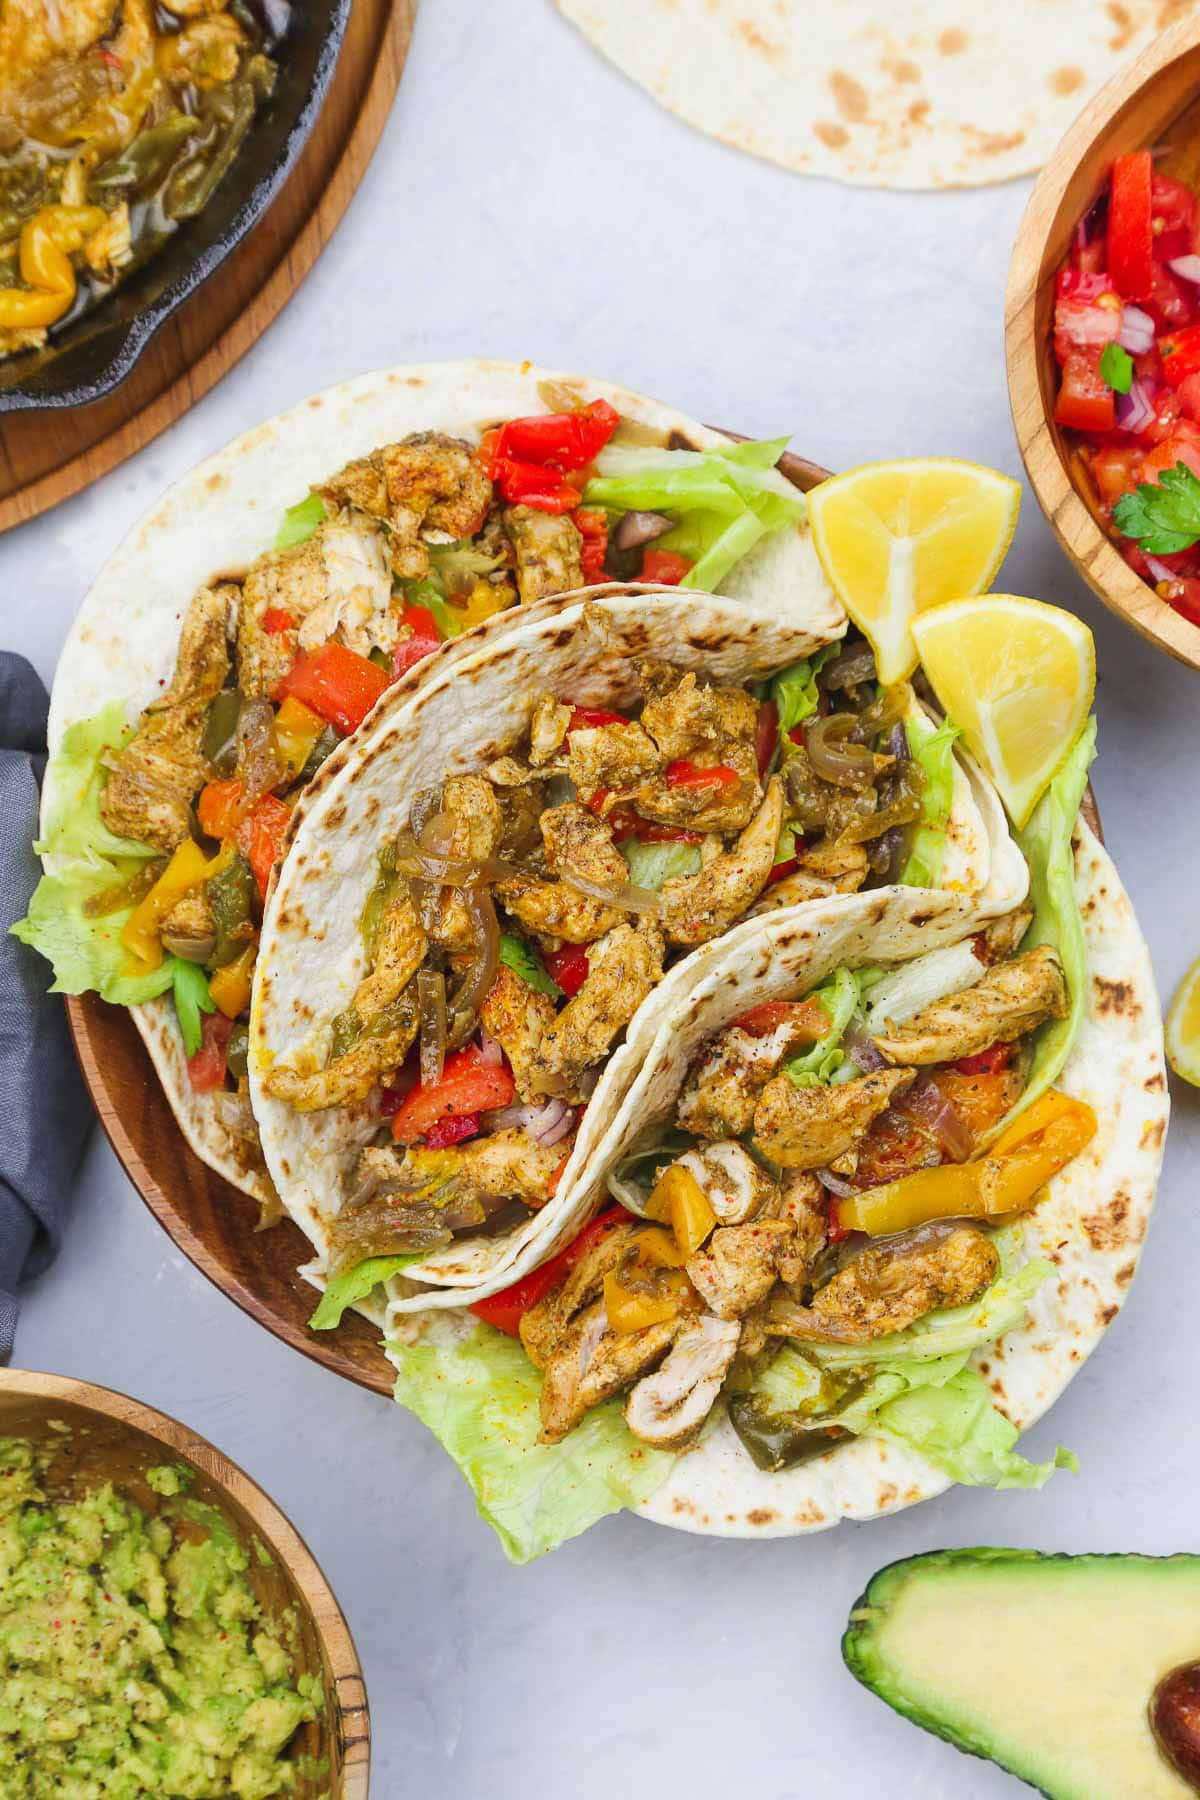 a picture of fajitas on a table with vegetables